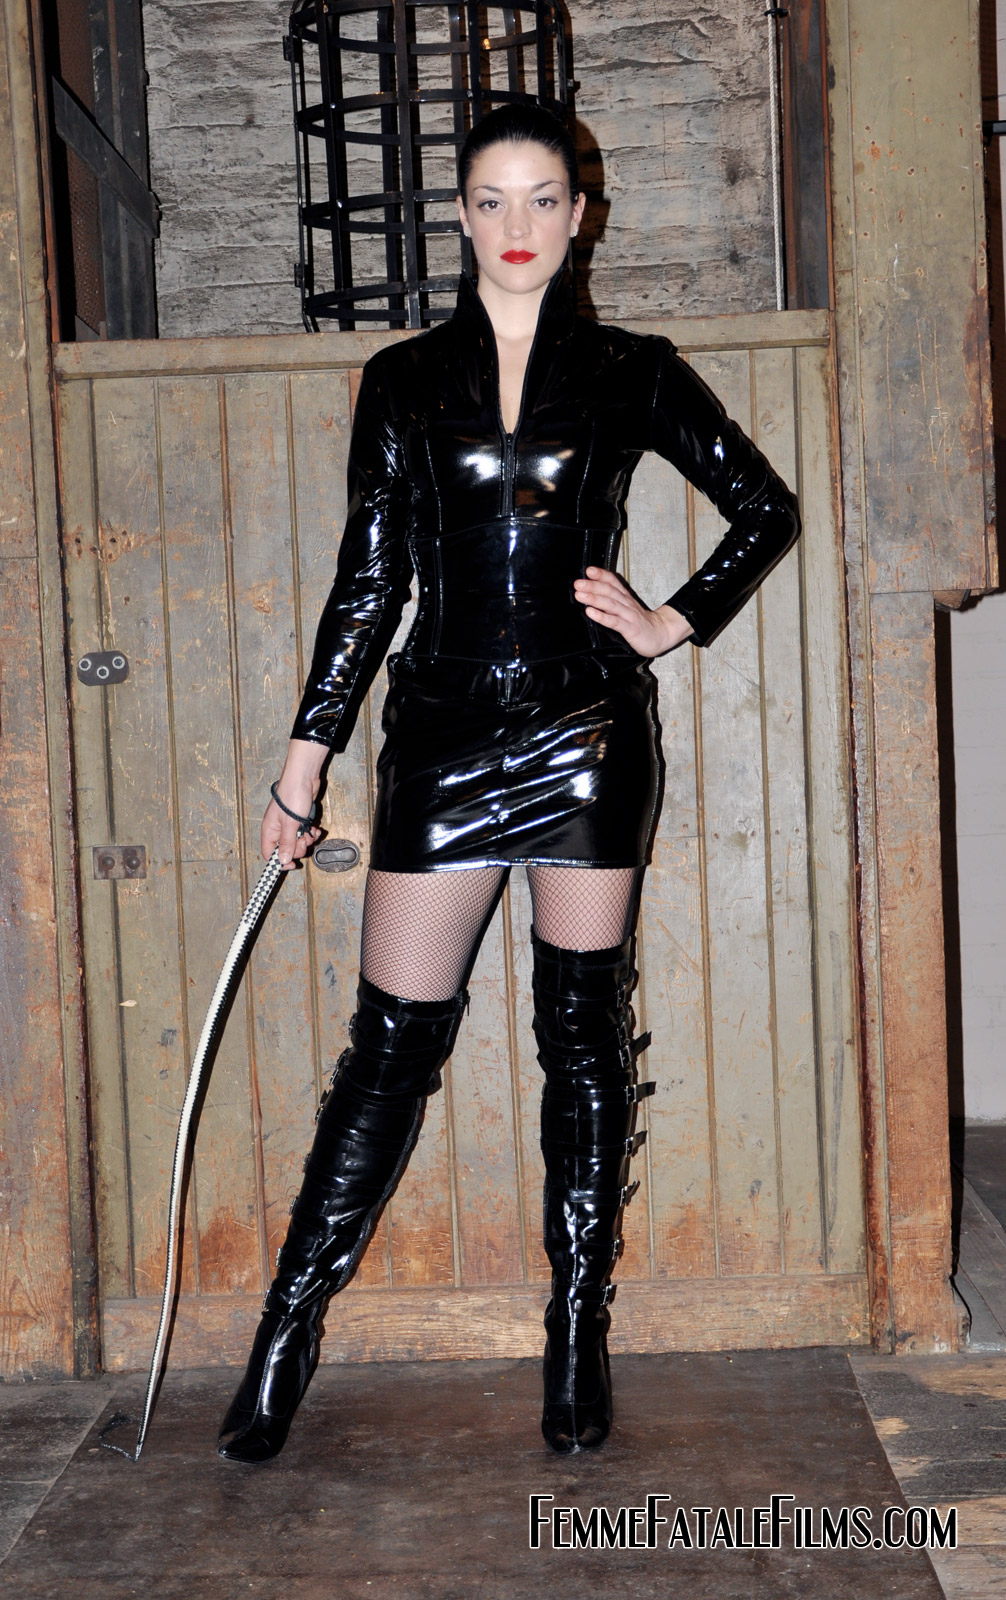 Dream foursome Bdsm videos and pictures